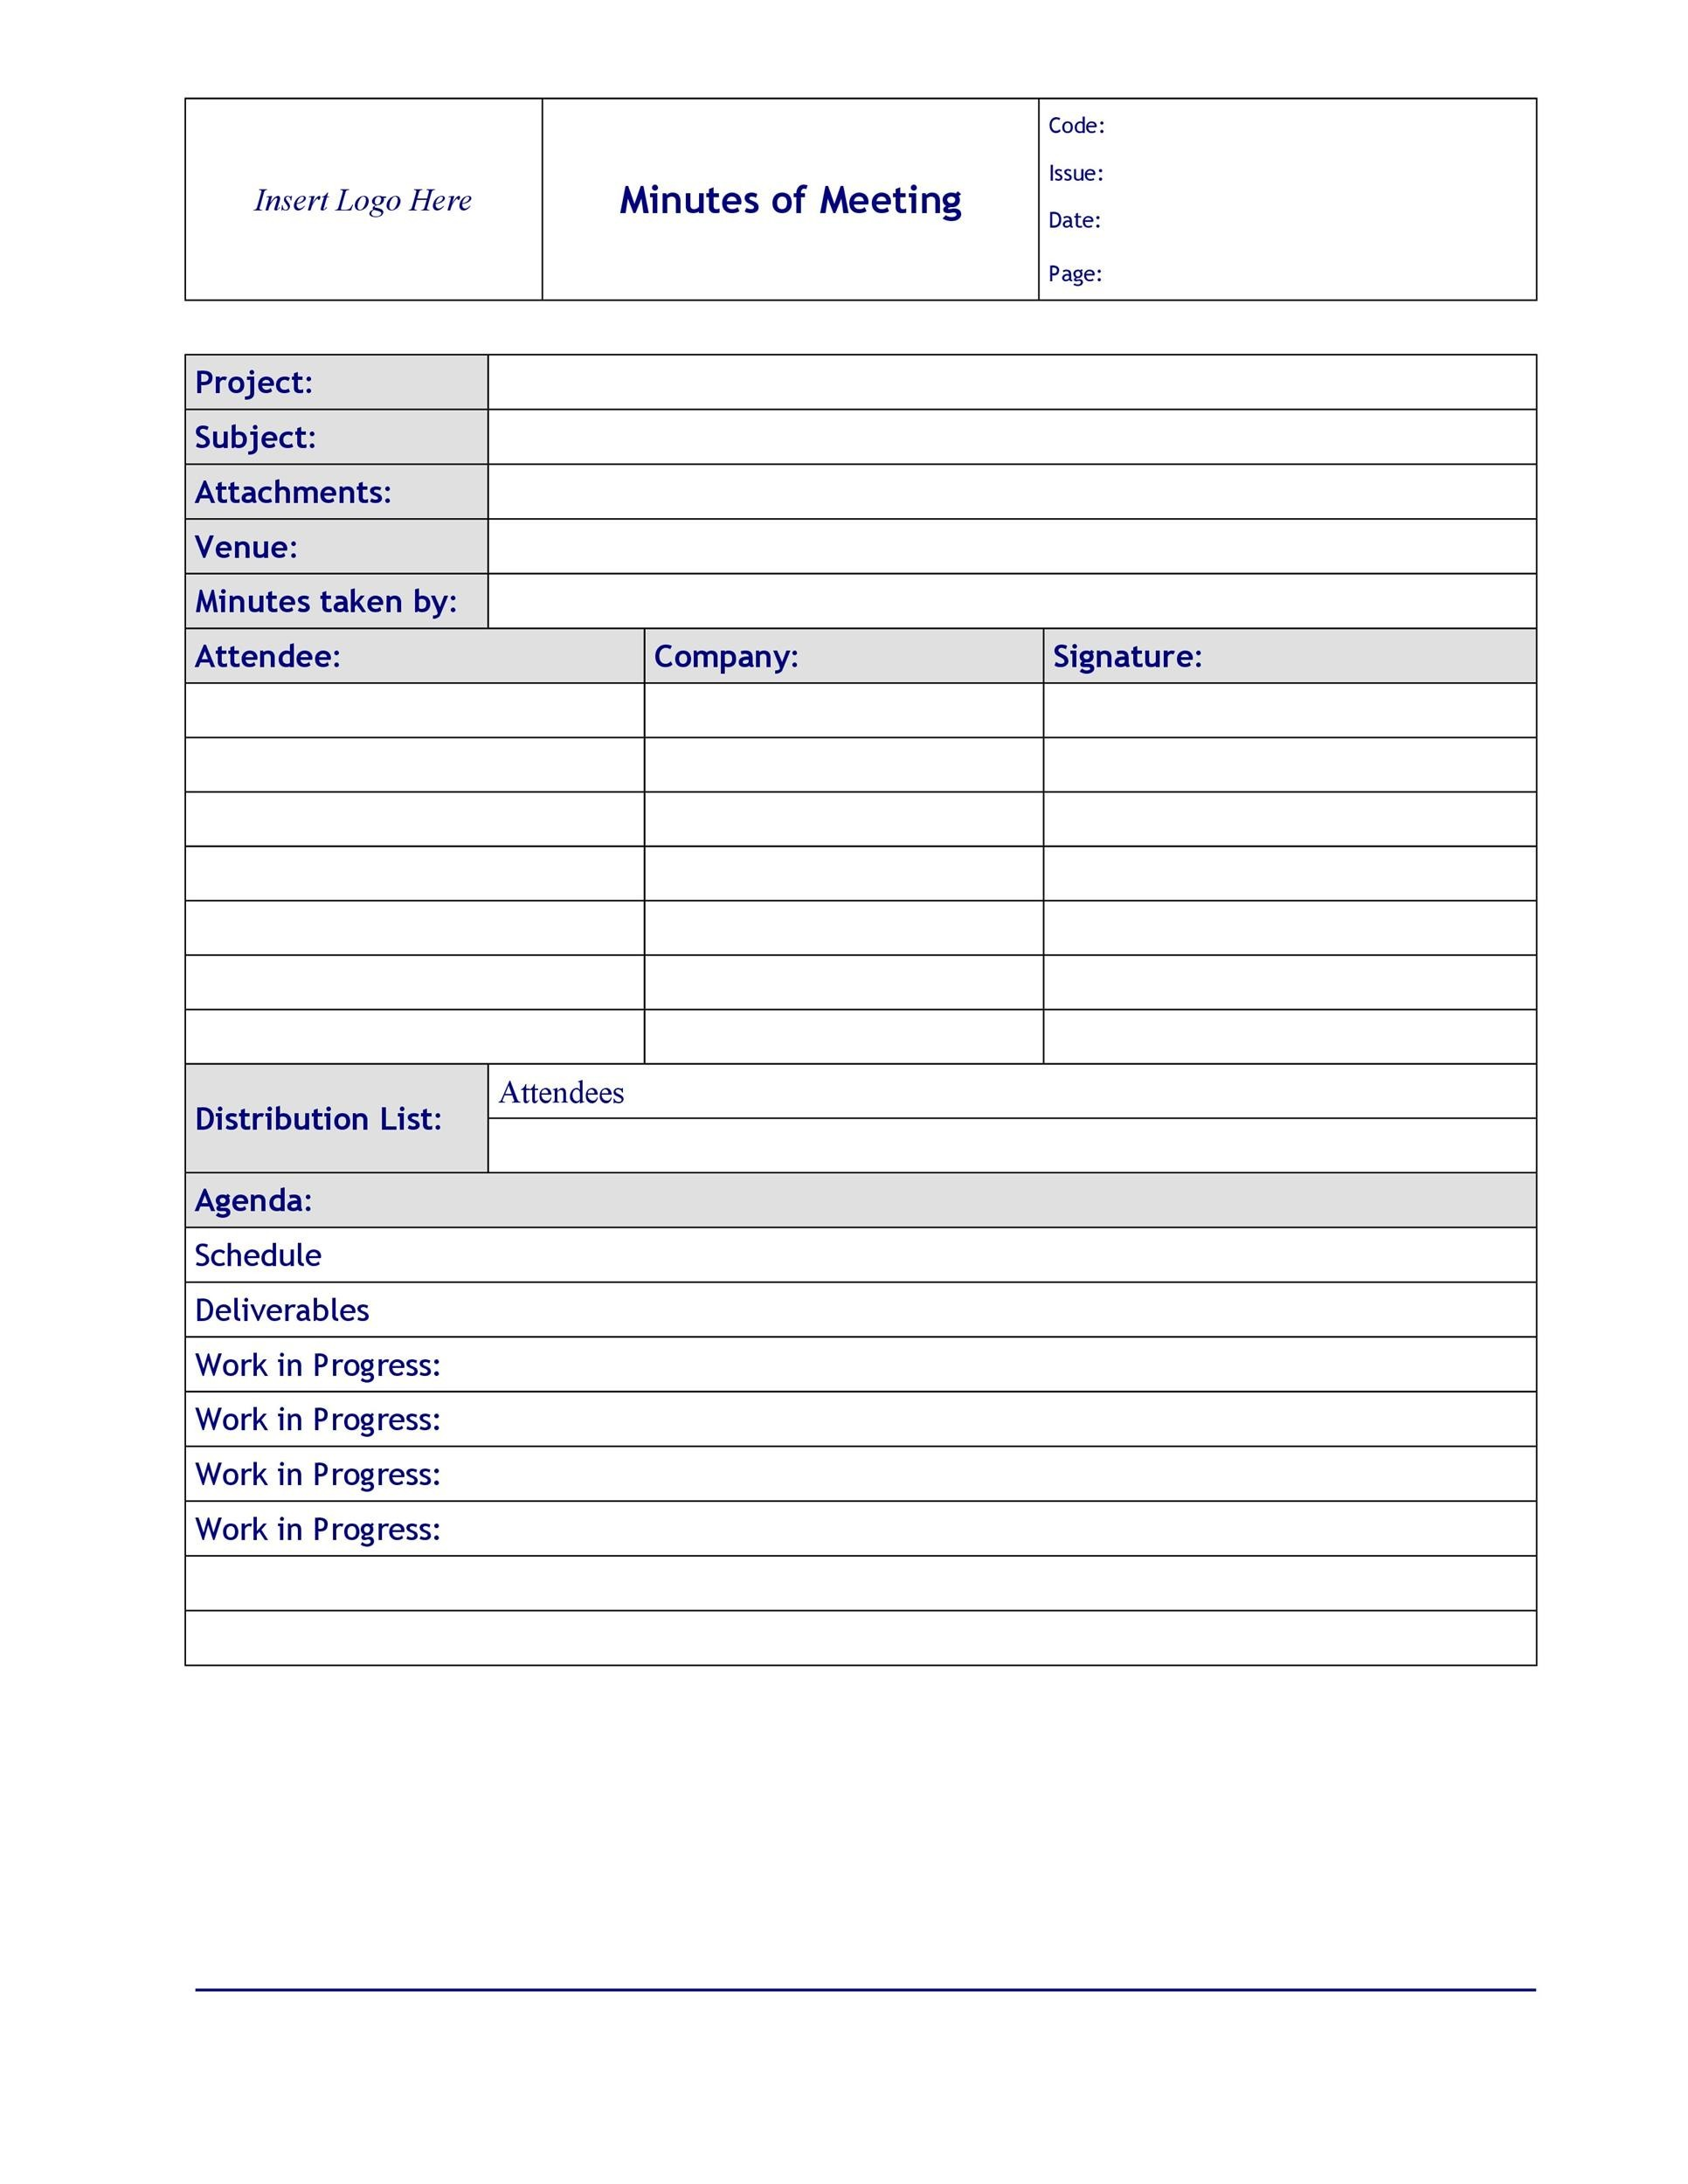 Pdf format · word document format · excel document format · sample jhsc. 26 Handy Meeting Minutes Meeting Notes Templates